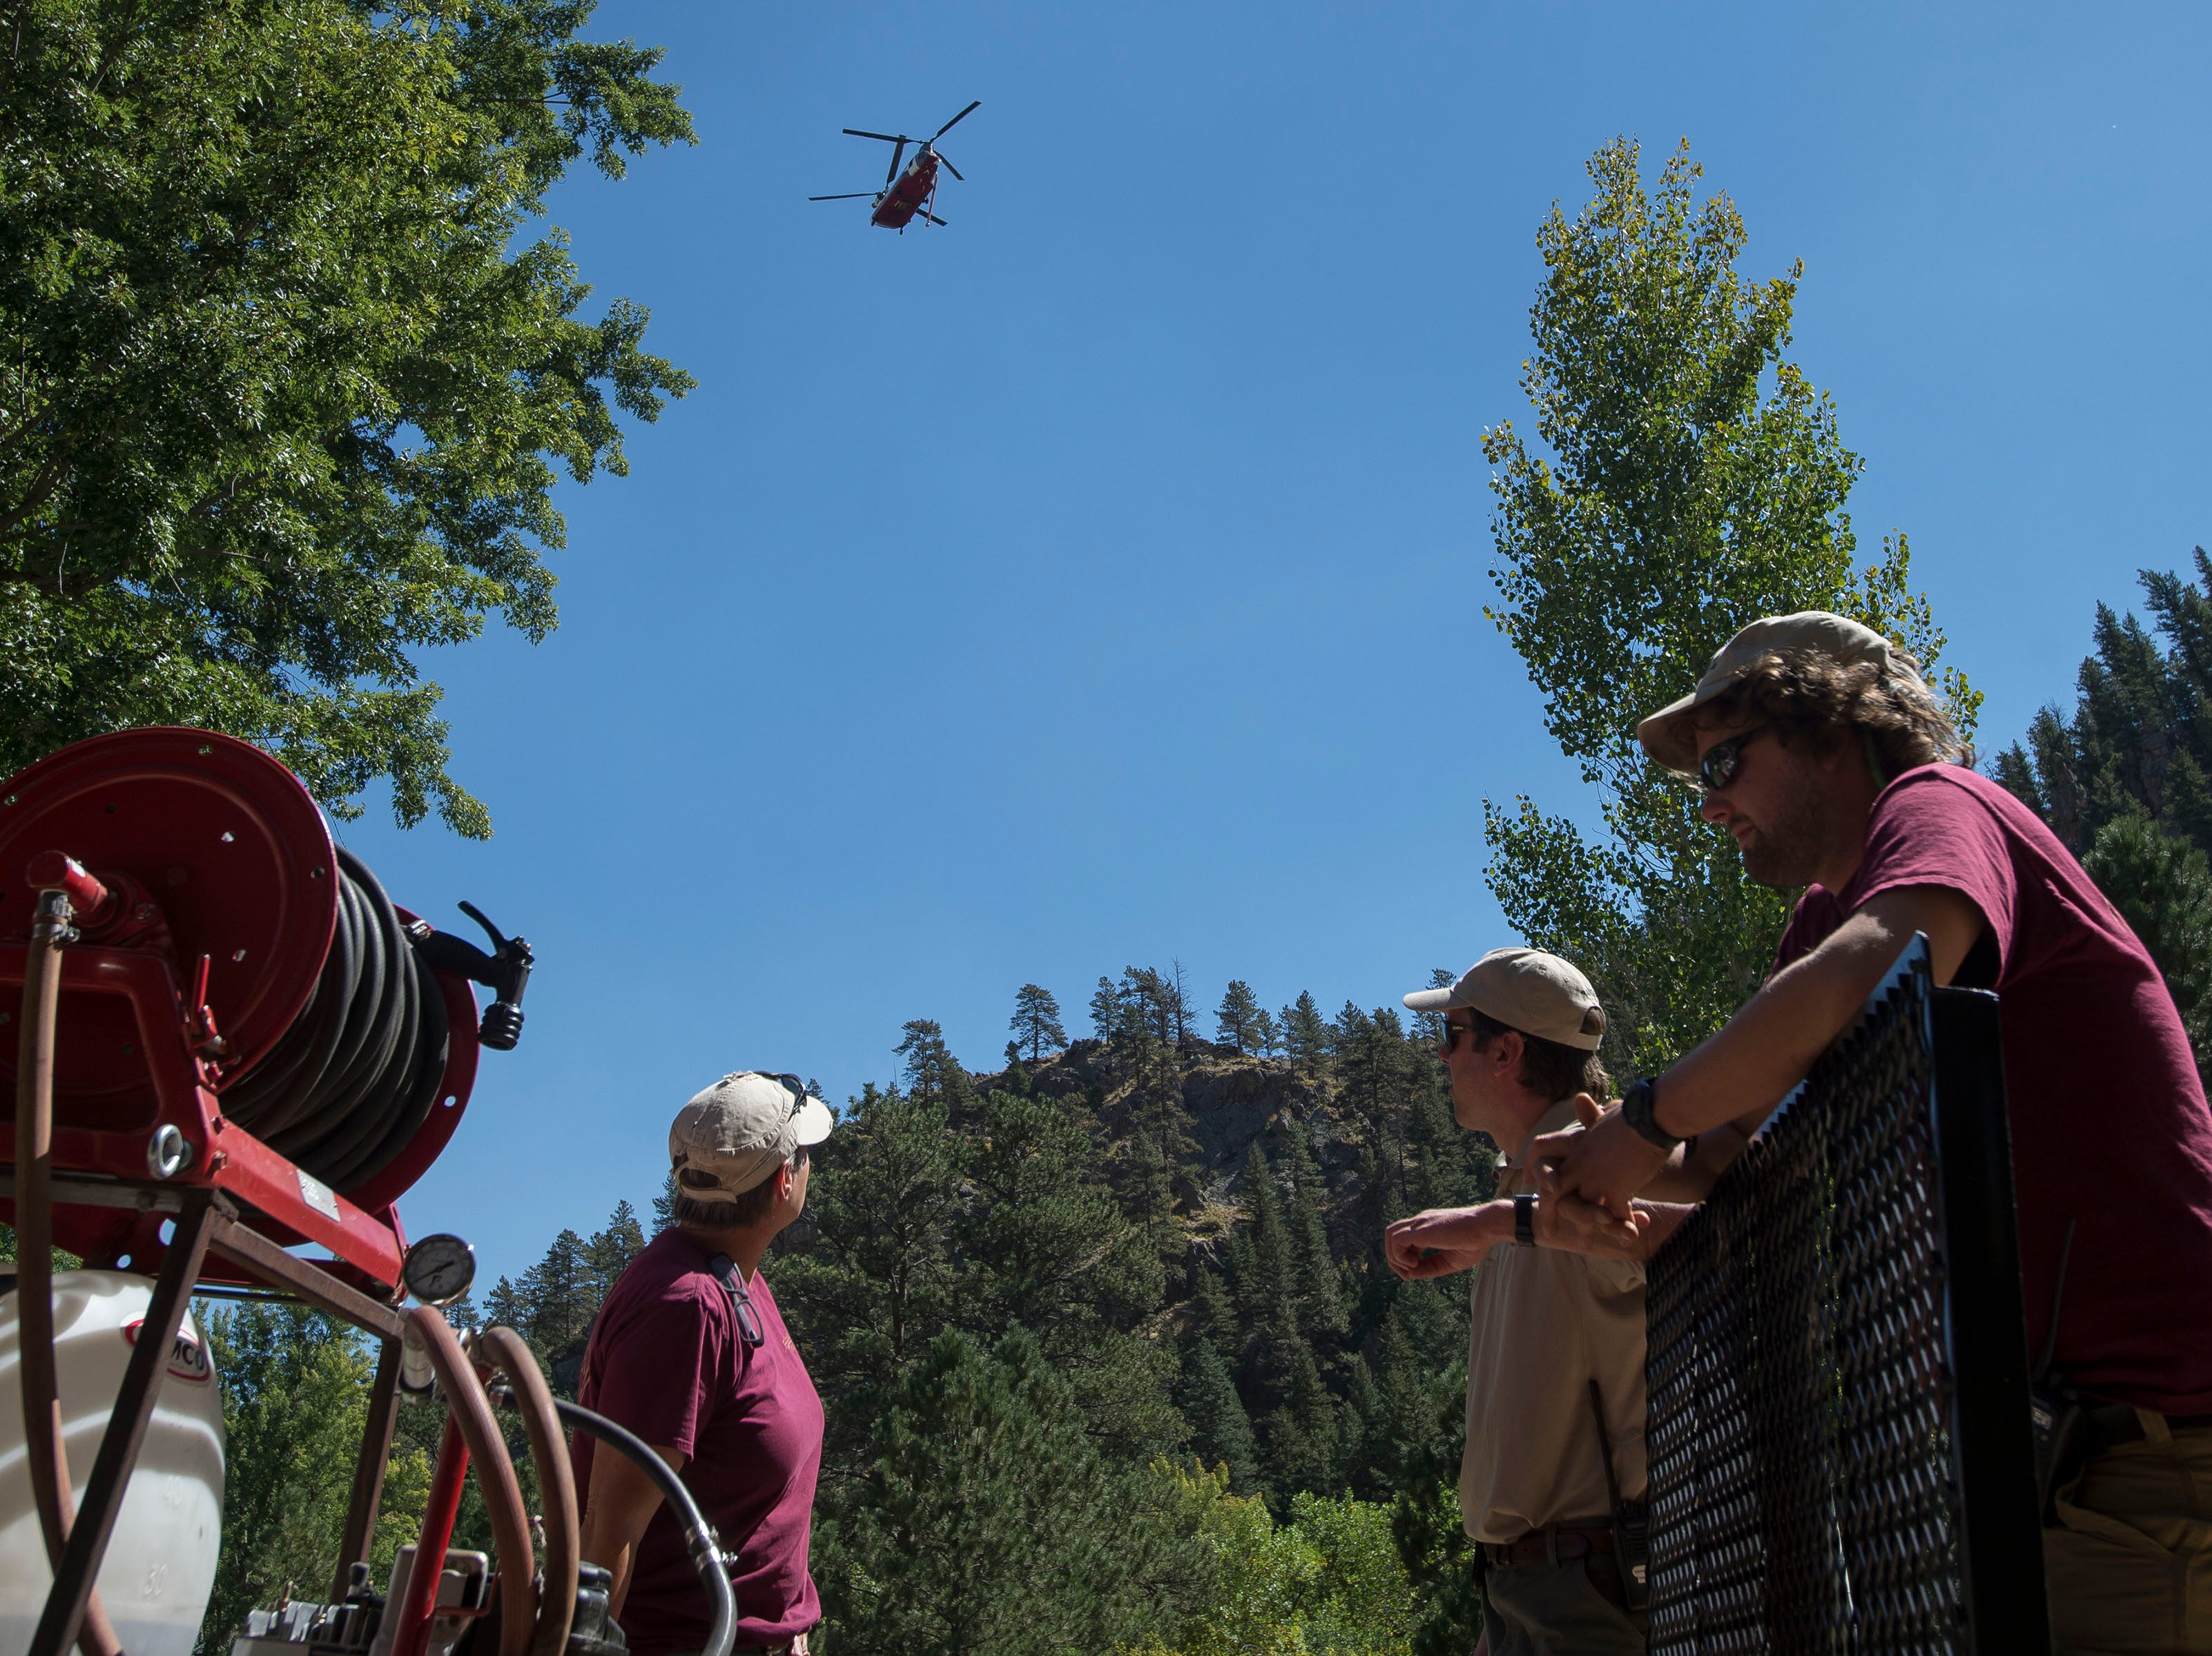 Gateway Park resident Park Ranger Gabe Johnson, center, and City of Fort Collins Natural Area crew members Peter Garner, right, and Anastasia Patterson, left, look up as a large tandem rotor helicopter carries water from Seaman reservoir to the fire nearby on Wednesday, Sept. 12, 2018, at Gateway Park in Larimer County, Colo.